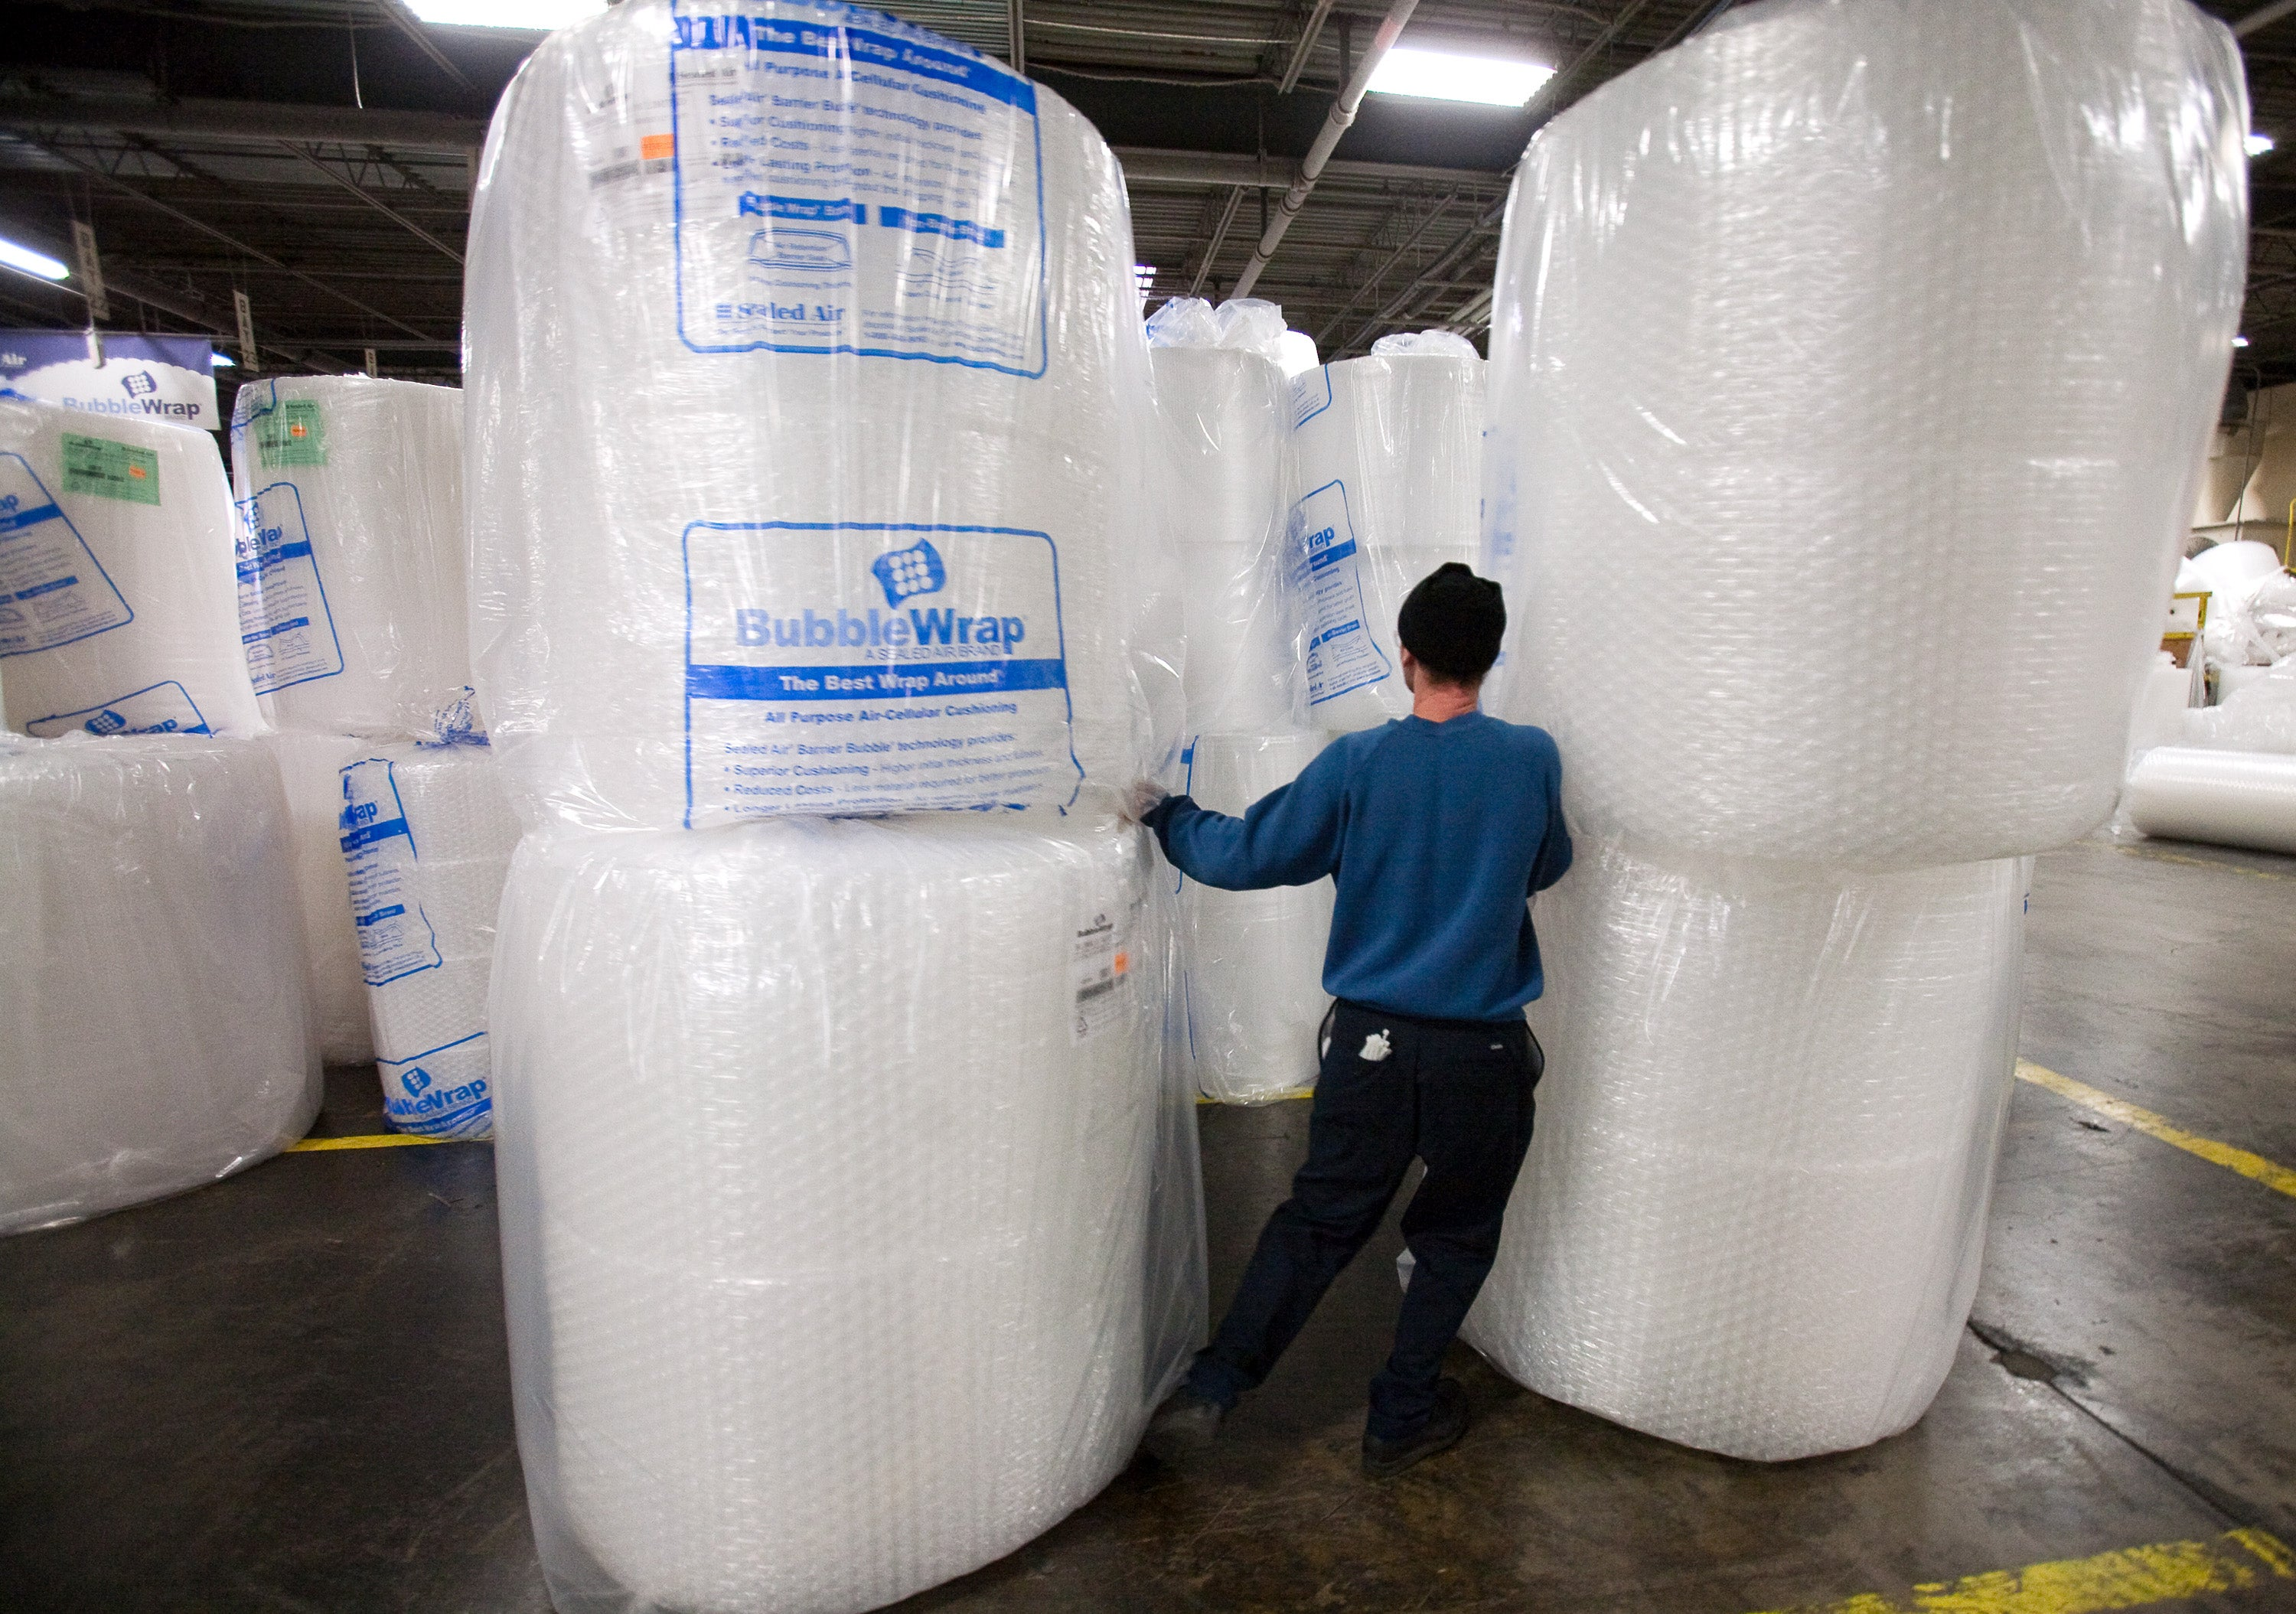 Bubble Wrap's New Design Is Unpoppable And It's All Our Fault